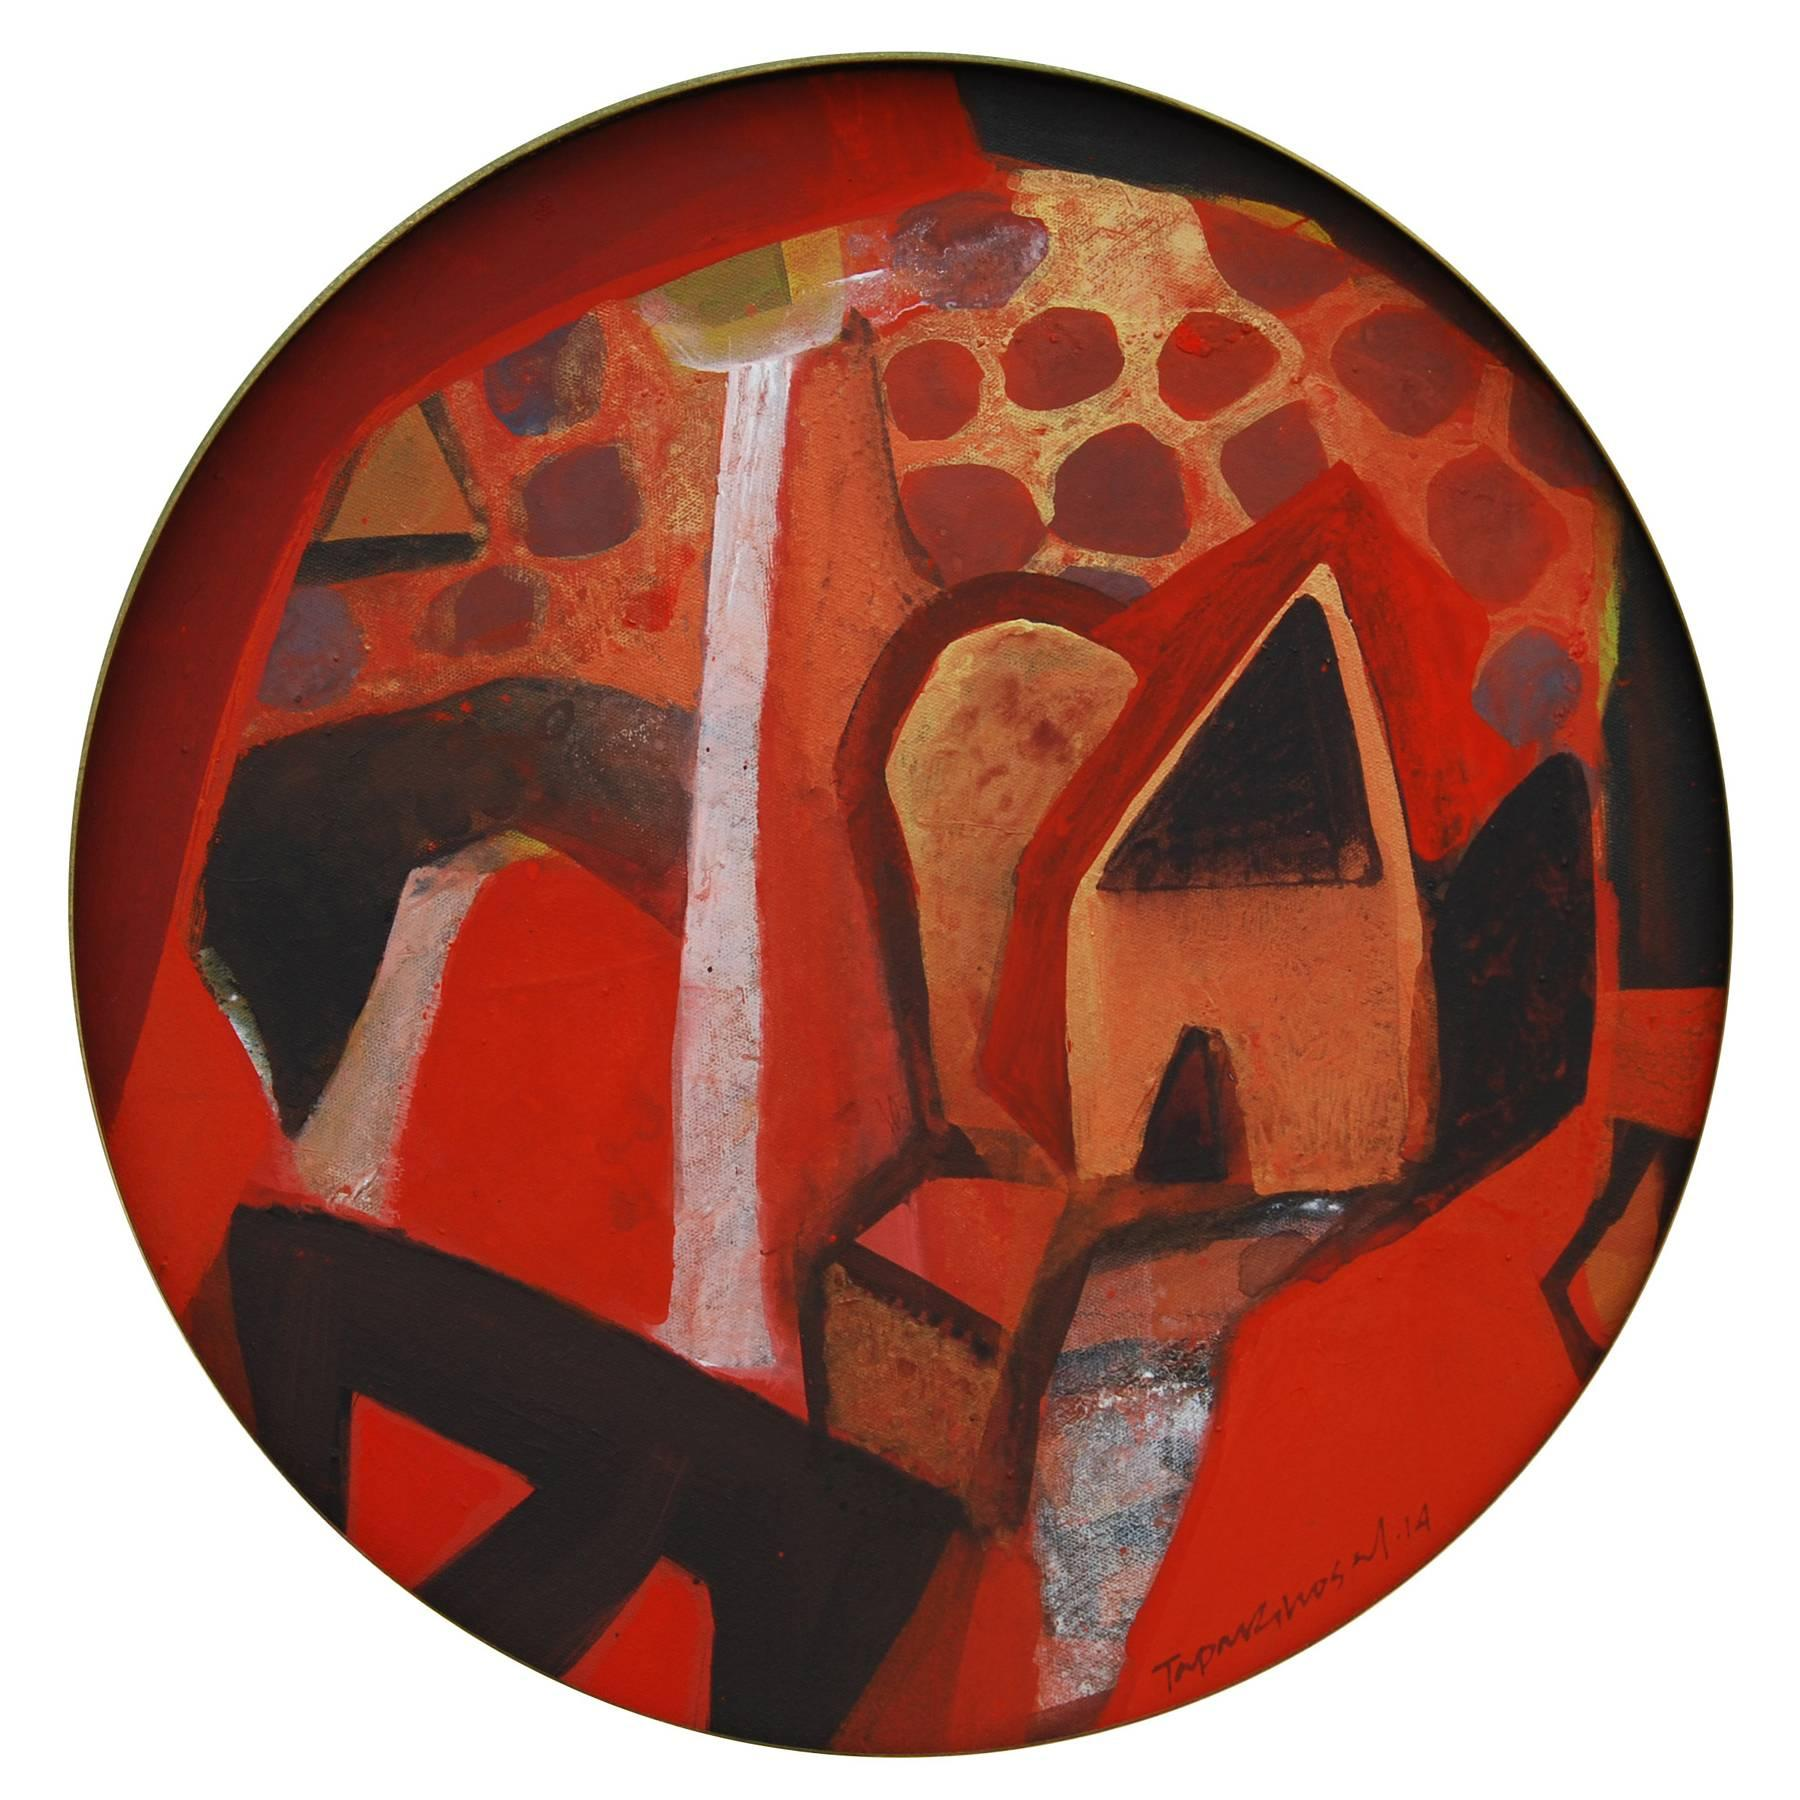 """Abstract, Round, Acrylic, Pastel, Pigment, Canvas, Red, Black, Brown """"In Stock"""""""